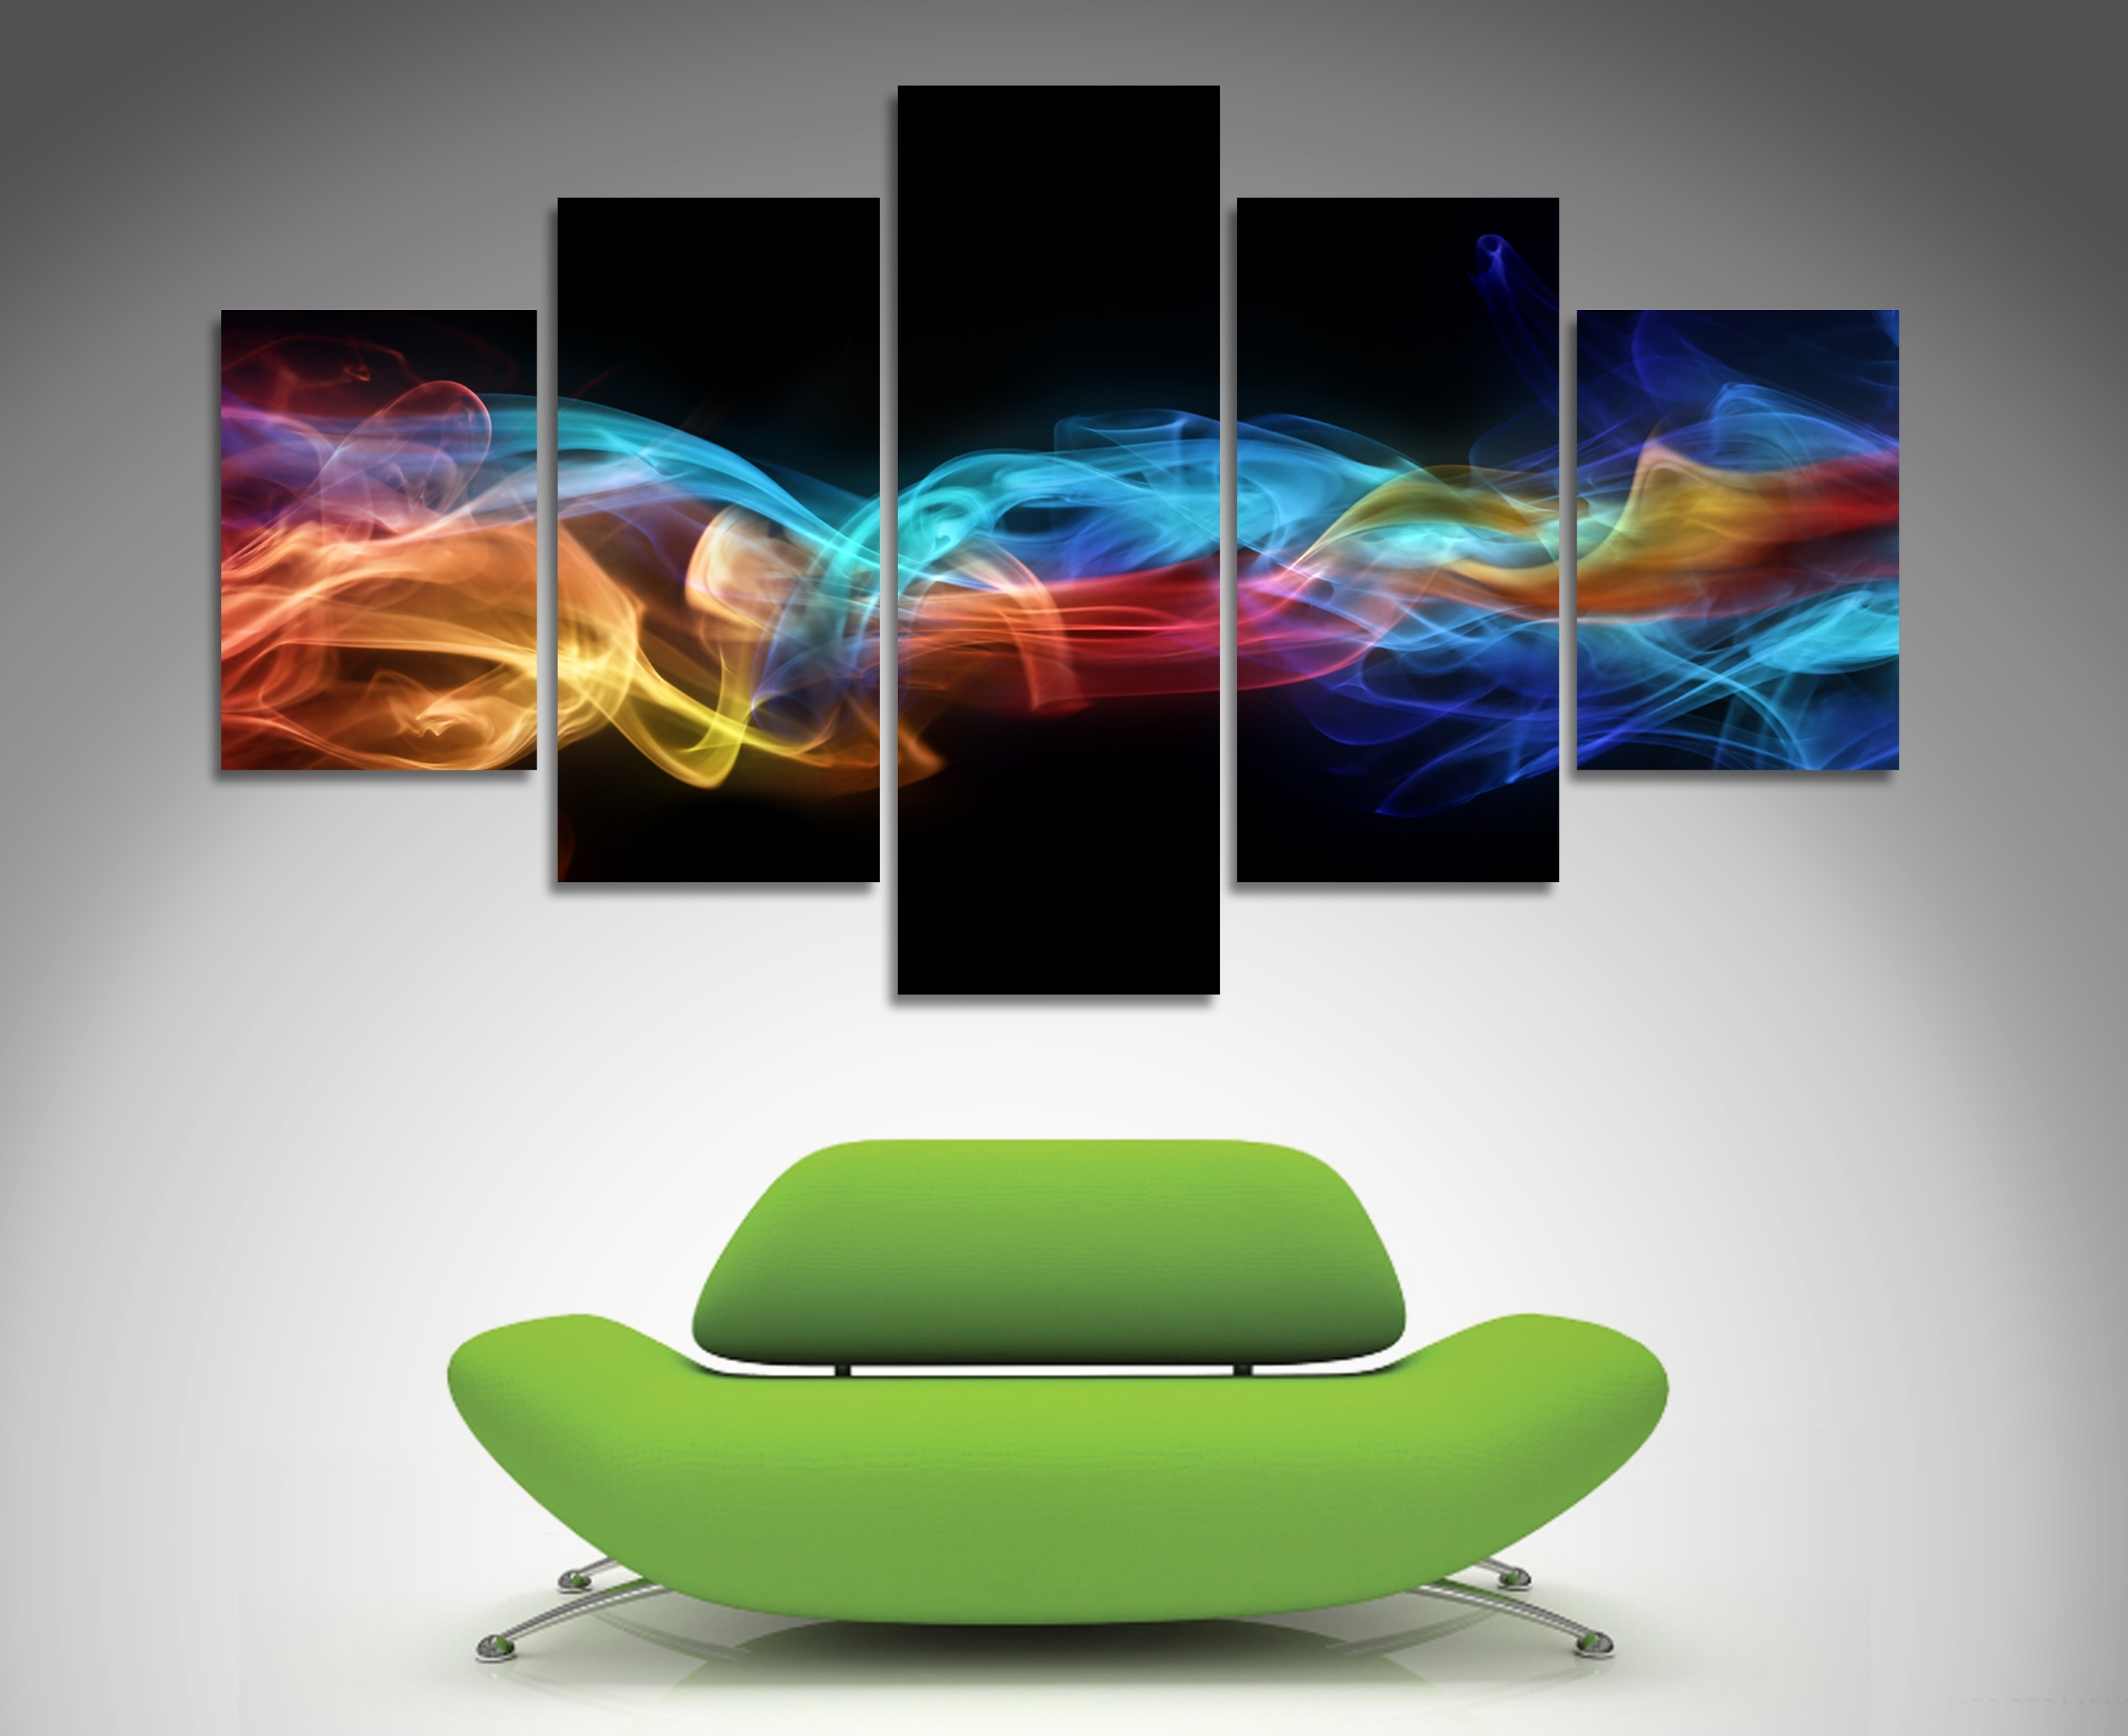 Widely Used Fire And Ice 5 Panel Wall Art (View 10 of 15)